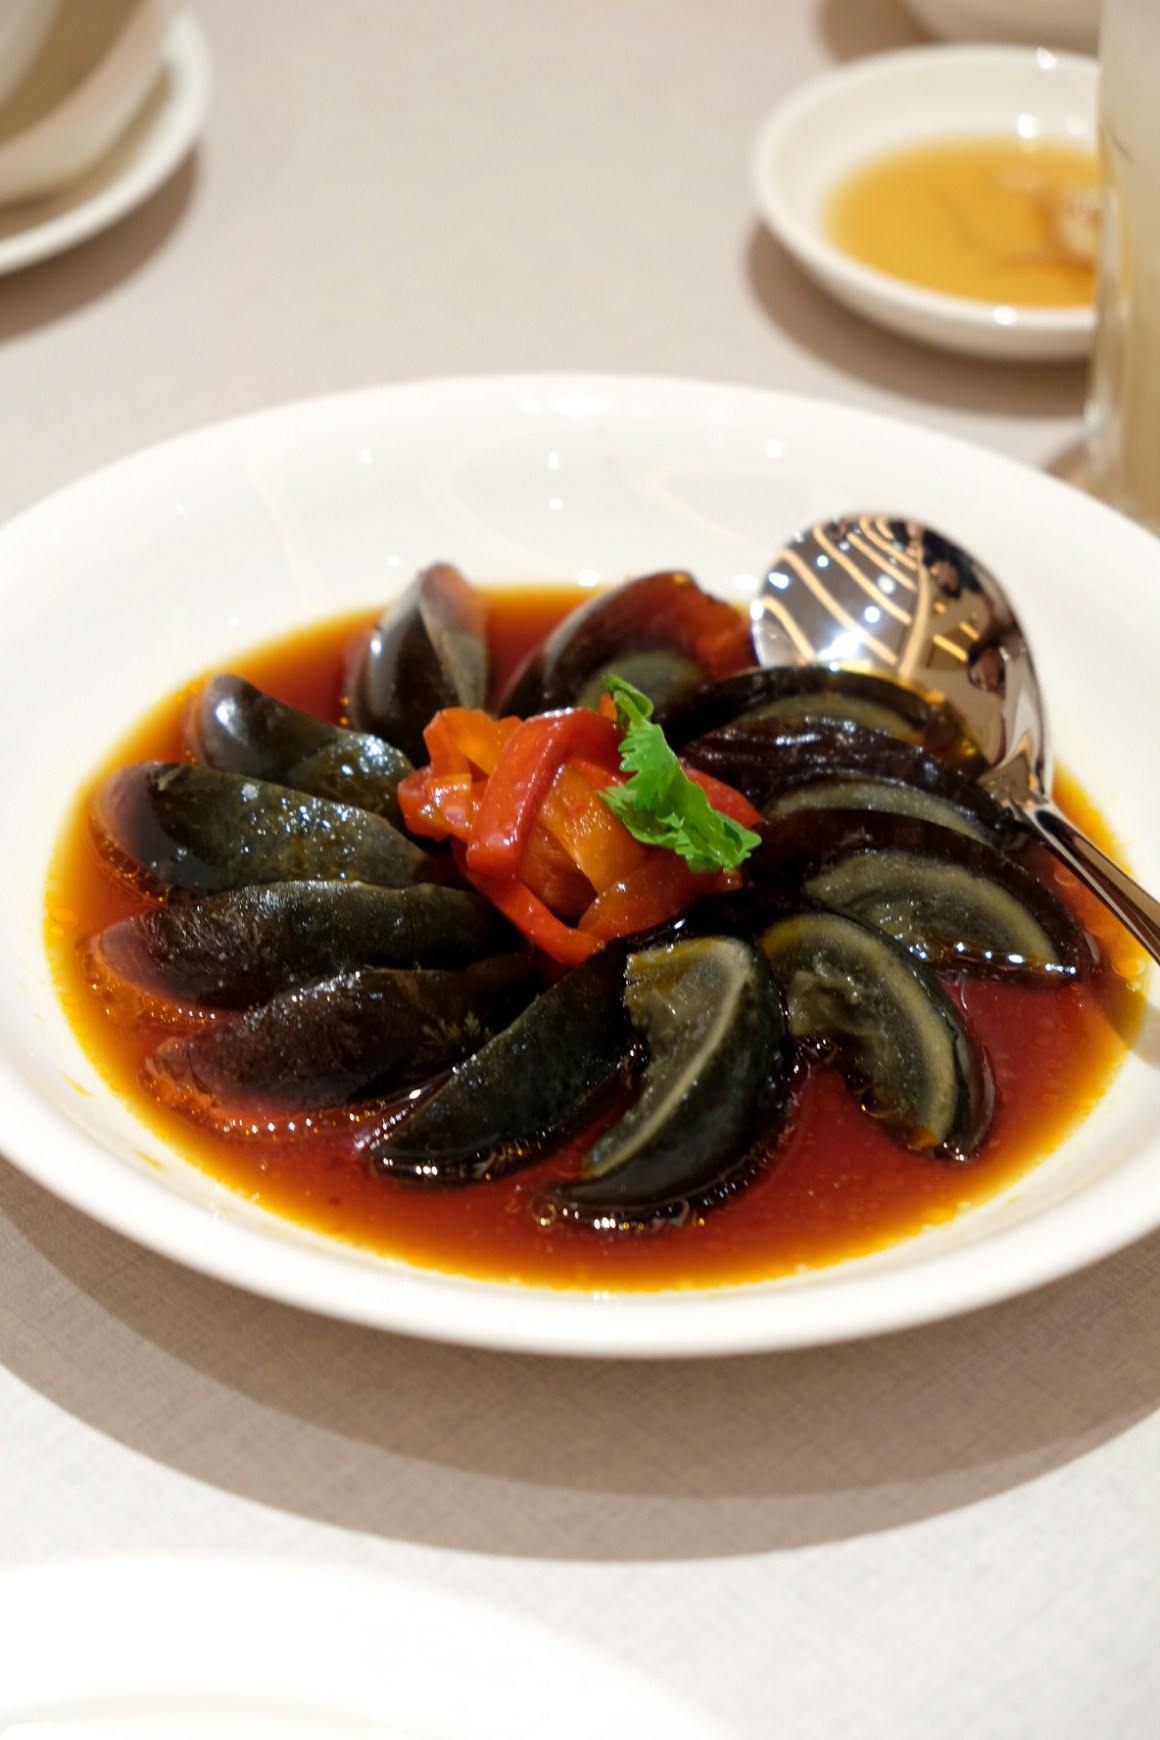 Century Egg with Vinaigrette and Chilli Oil